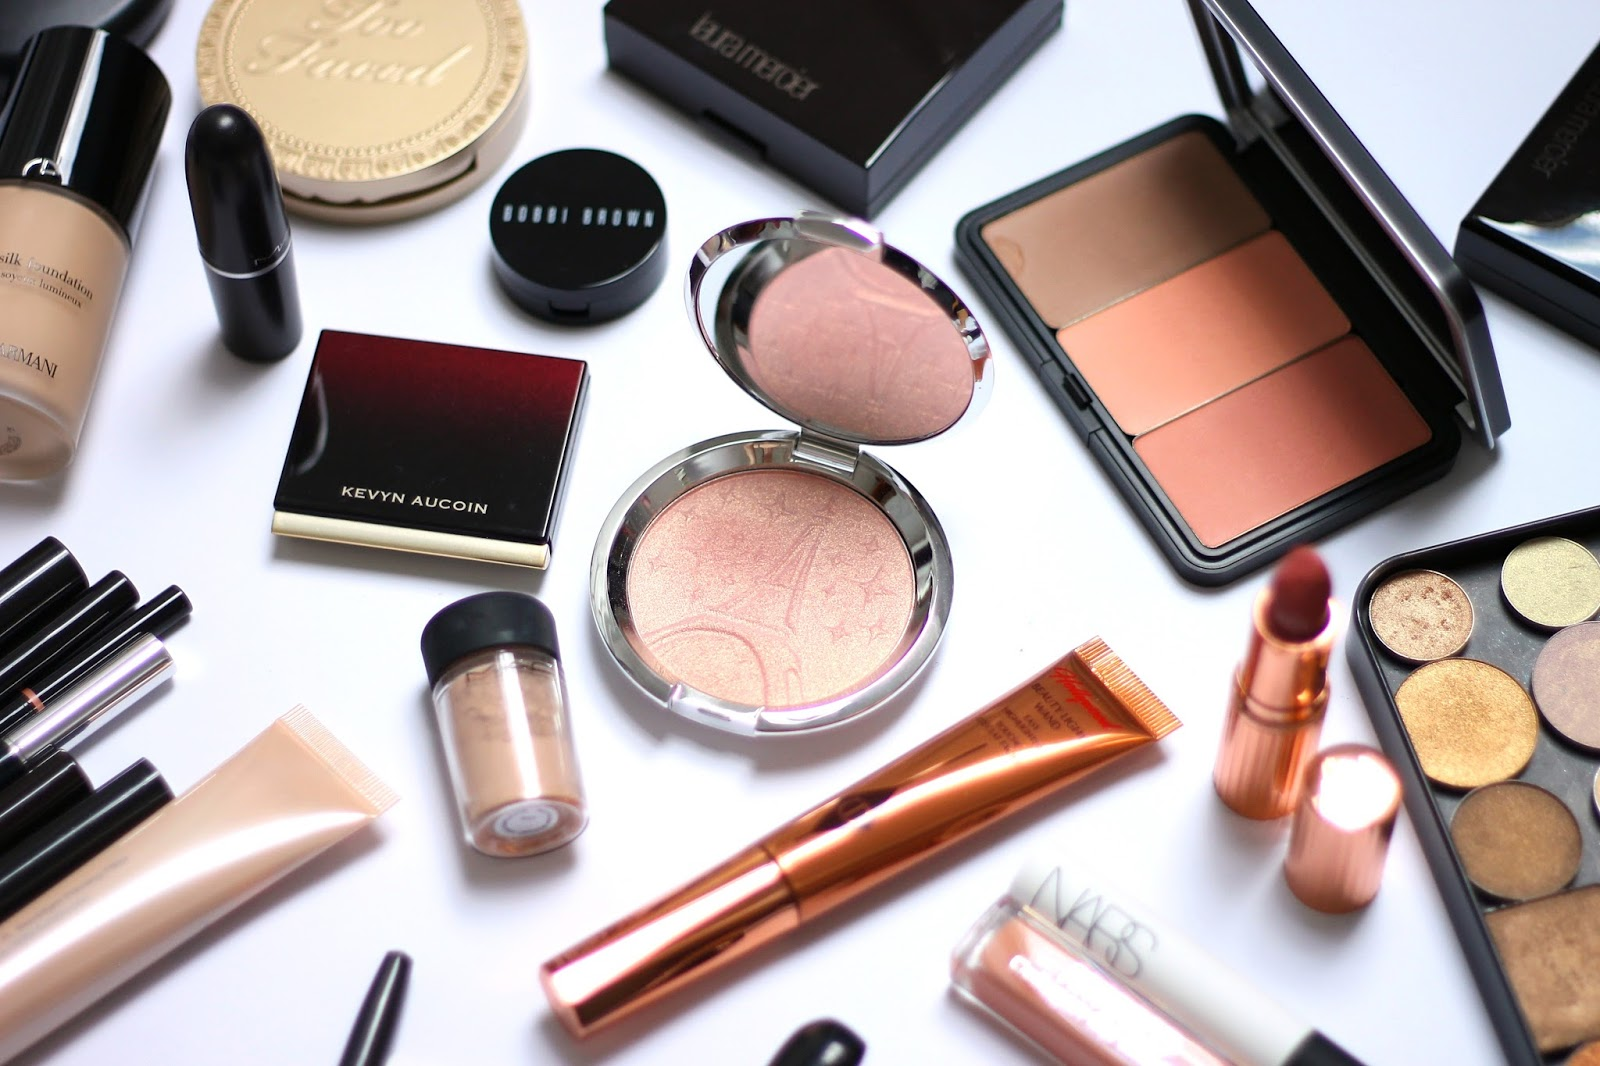 becca shimmering skin perfector parisian lights charlotte tilbury hollywood magic wand kevyn aucoin medium mac naked pigment becca backlight priming filter charlotte tilbury super cindy review recenzija makeup look